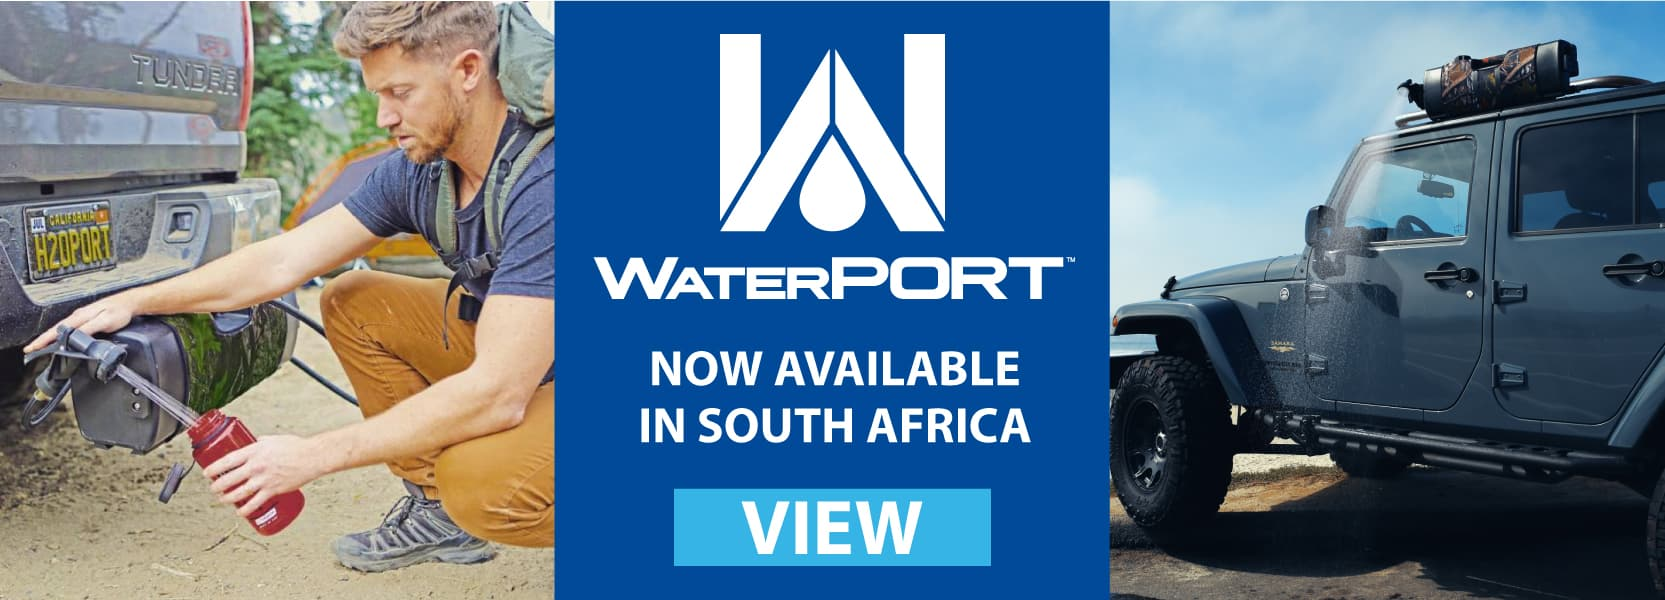 WATERPORT-Darkstar-Website-Bnanner